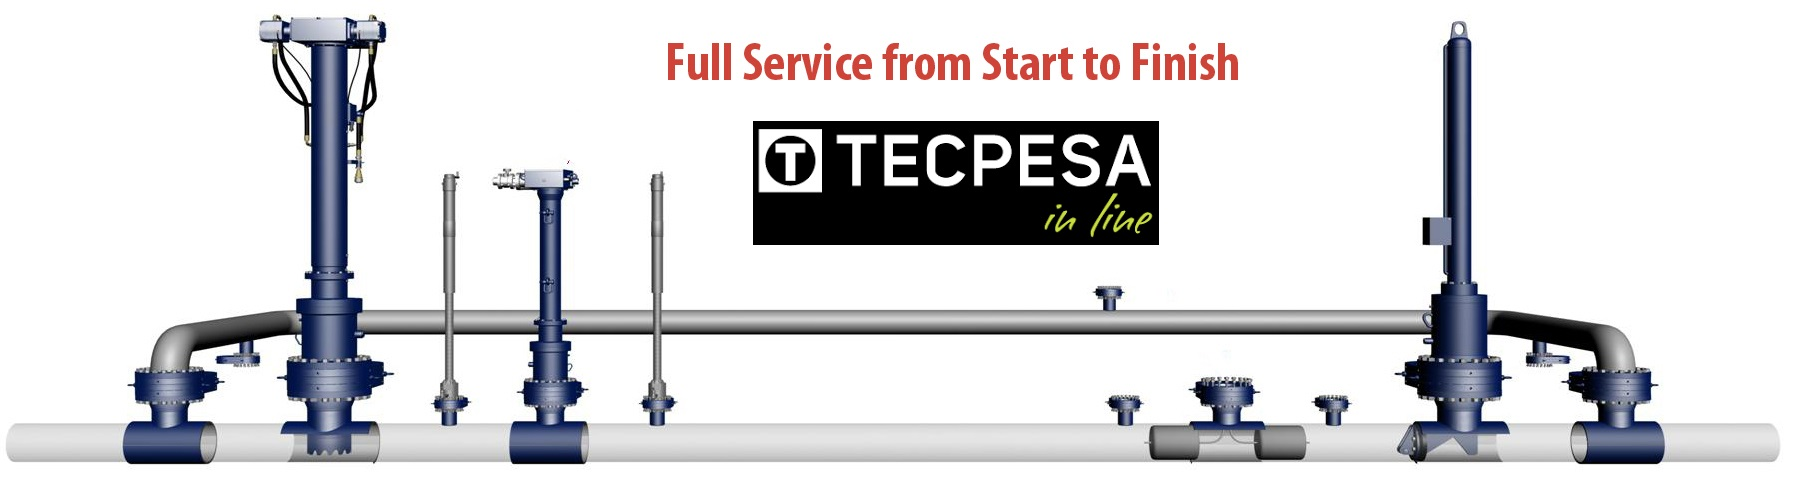 Leading distributor of industry leading HotTap Fitting and Line Stop Equipment and Services